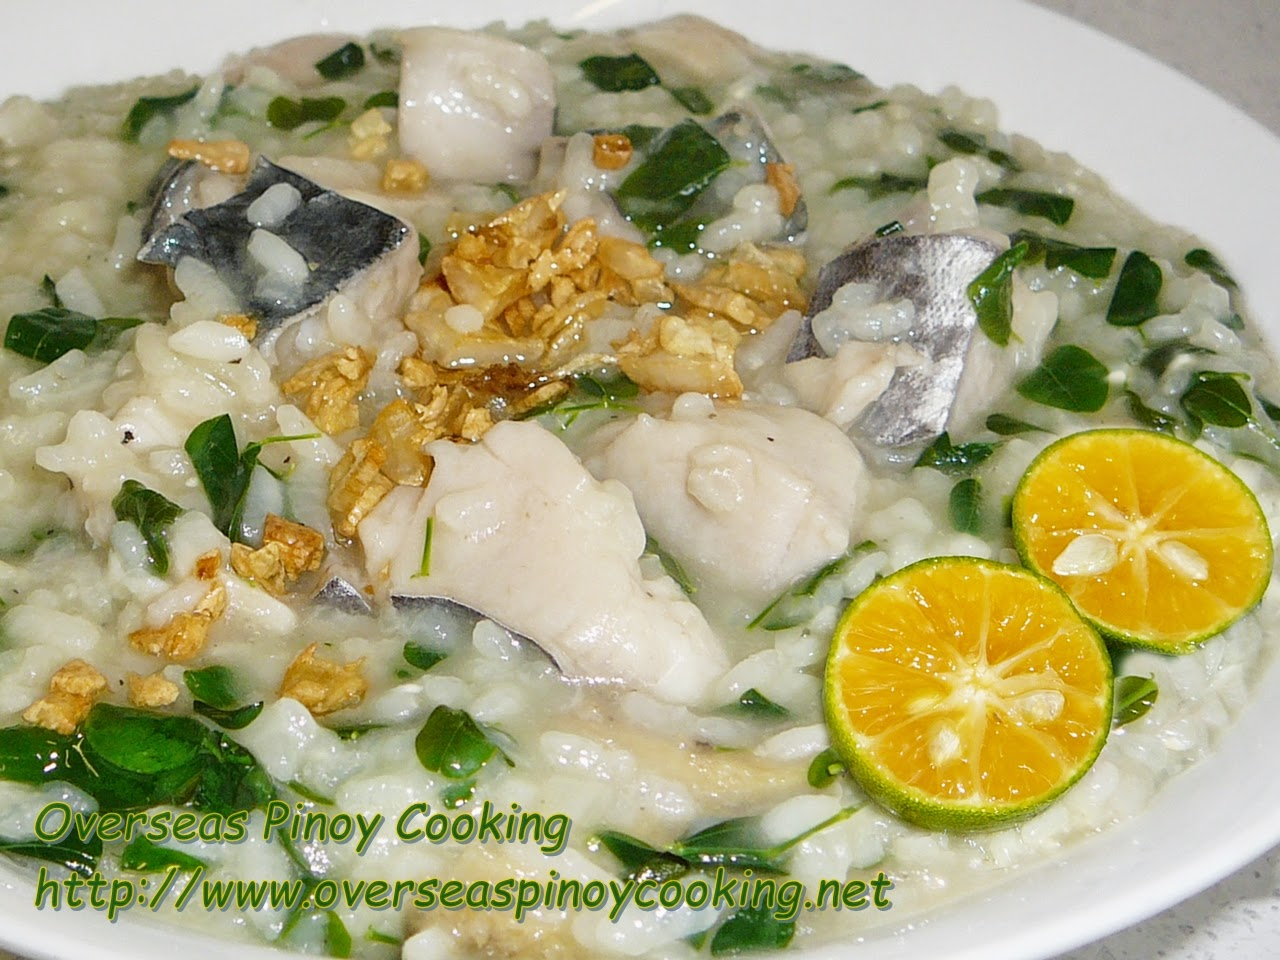 Fish Lugaw with Malungay, a Pinoy version of Fish Risotto with Malungay